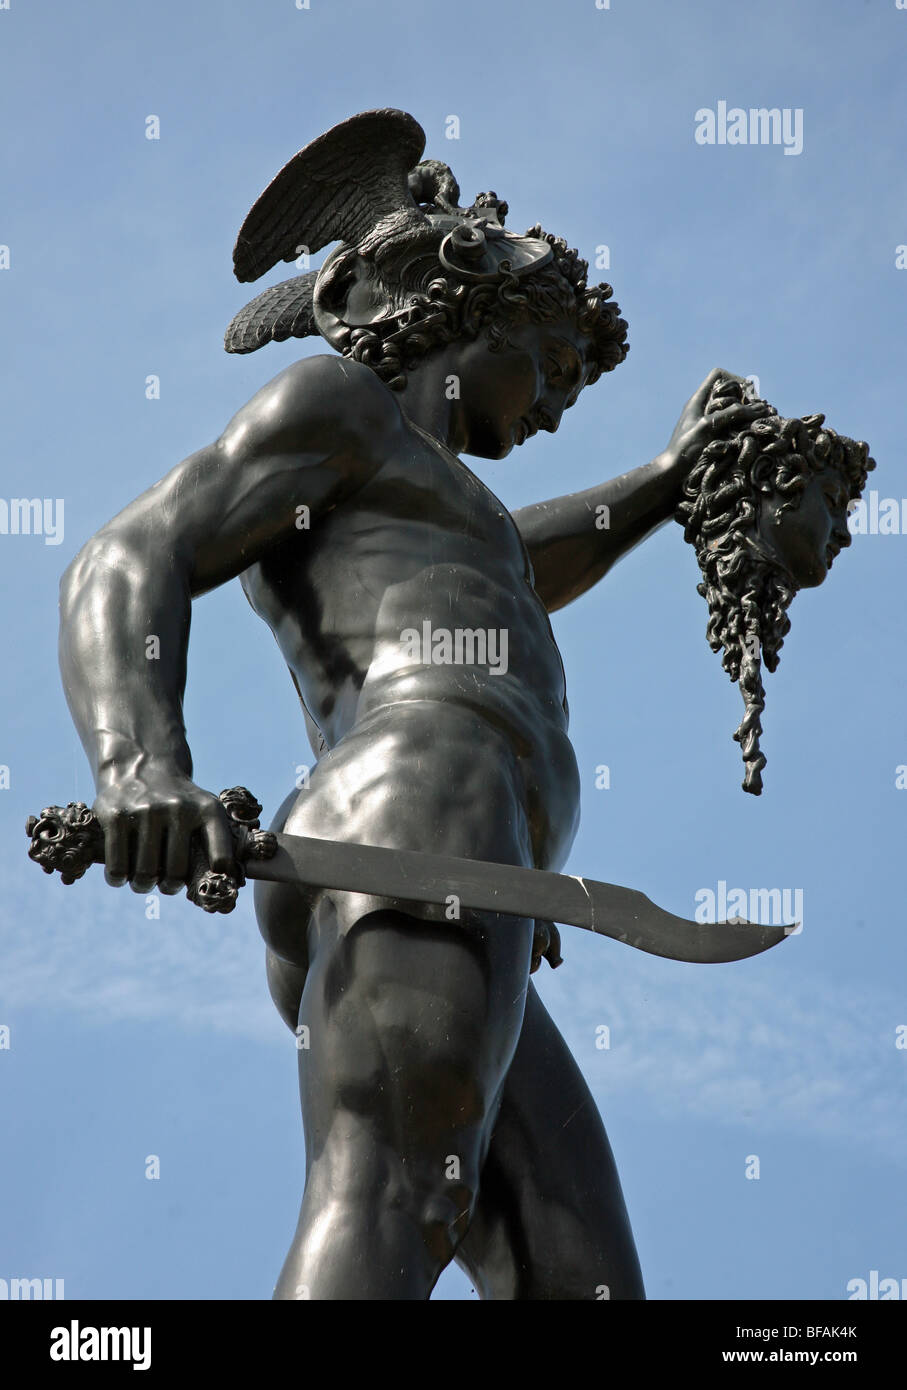 perseus with the head of medusa The medusa story and the tale of perseus learn who perseus was and how he came to slice off the gorgon's head with a sword.